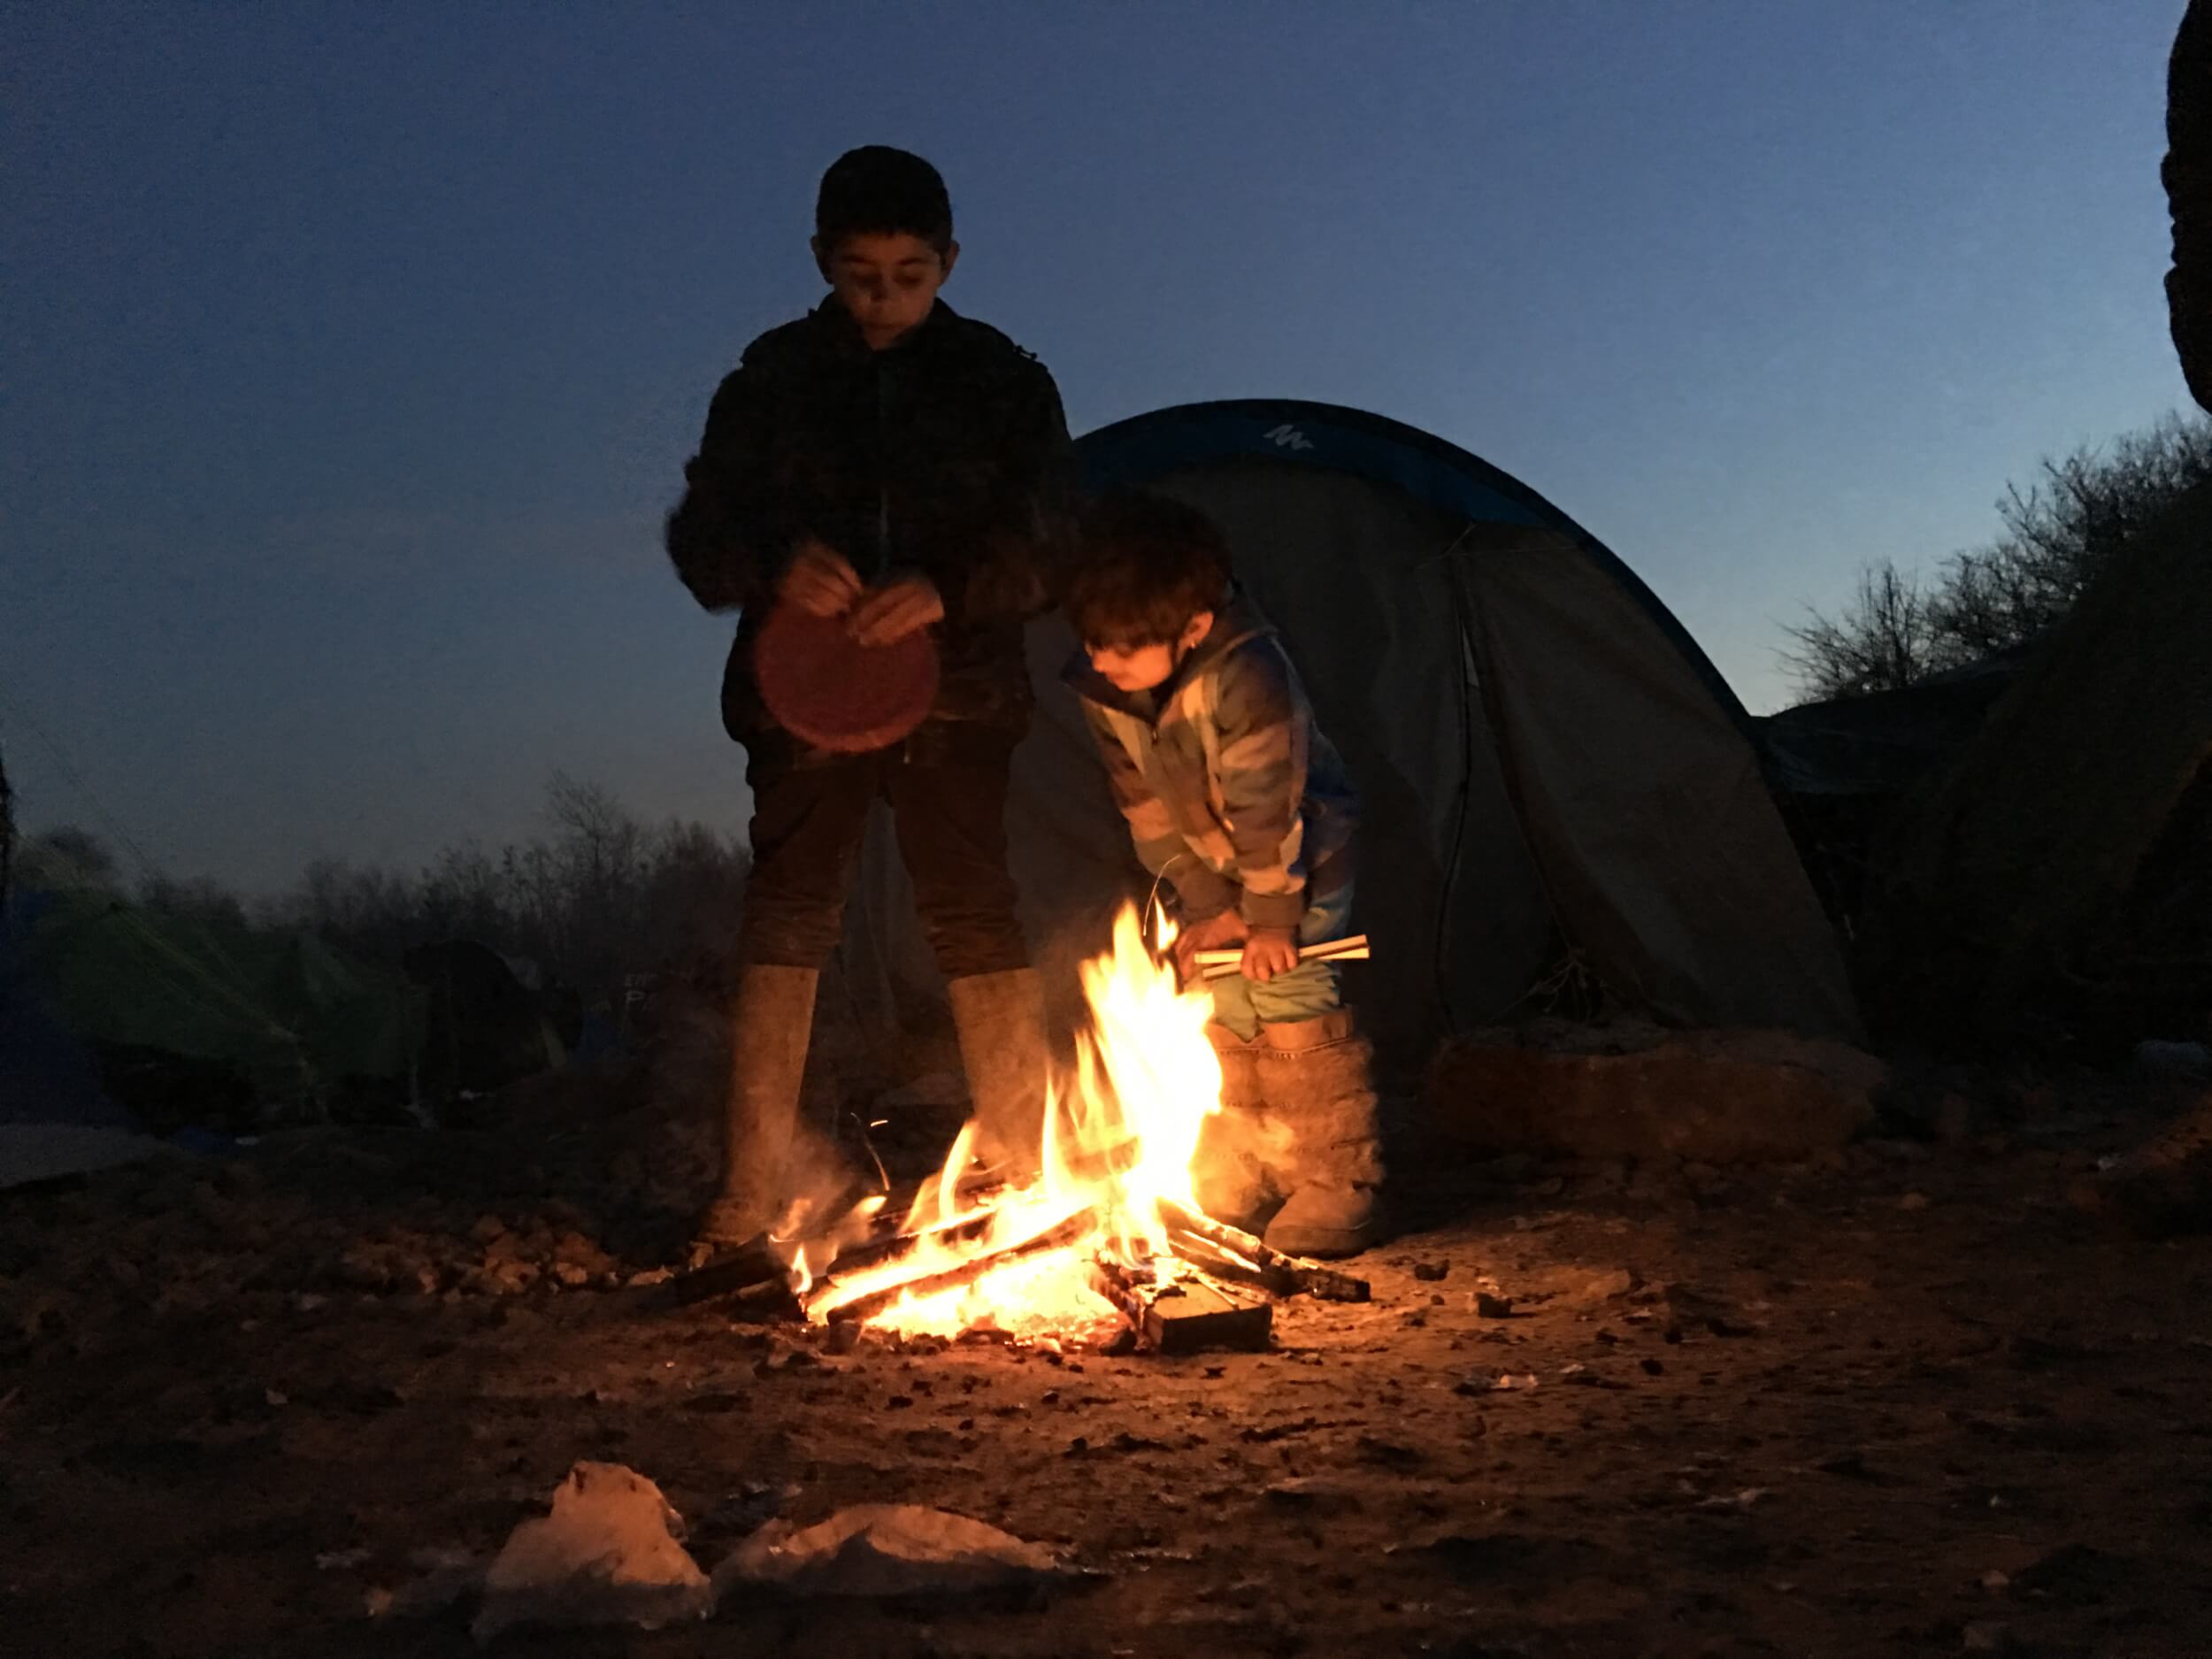 Anas, 10, and Shadi, 6 look on to a fire next to their tent. They have been in Grande-Synthe for eleven days. (Photo: Katherine Schwartz)